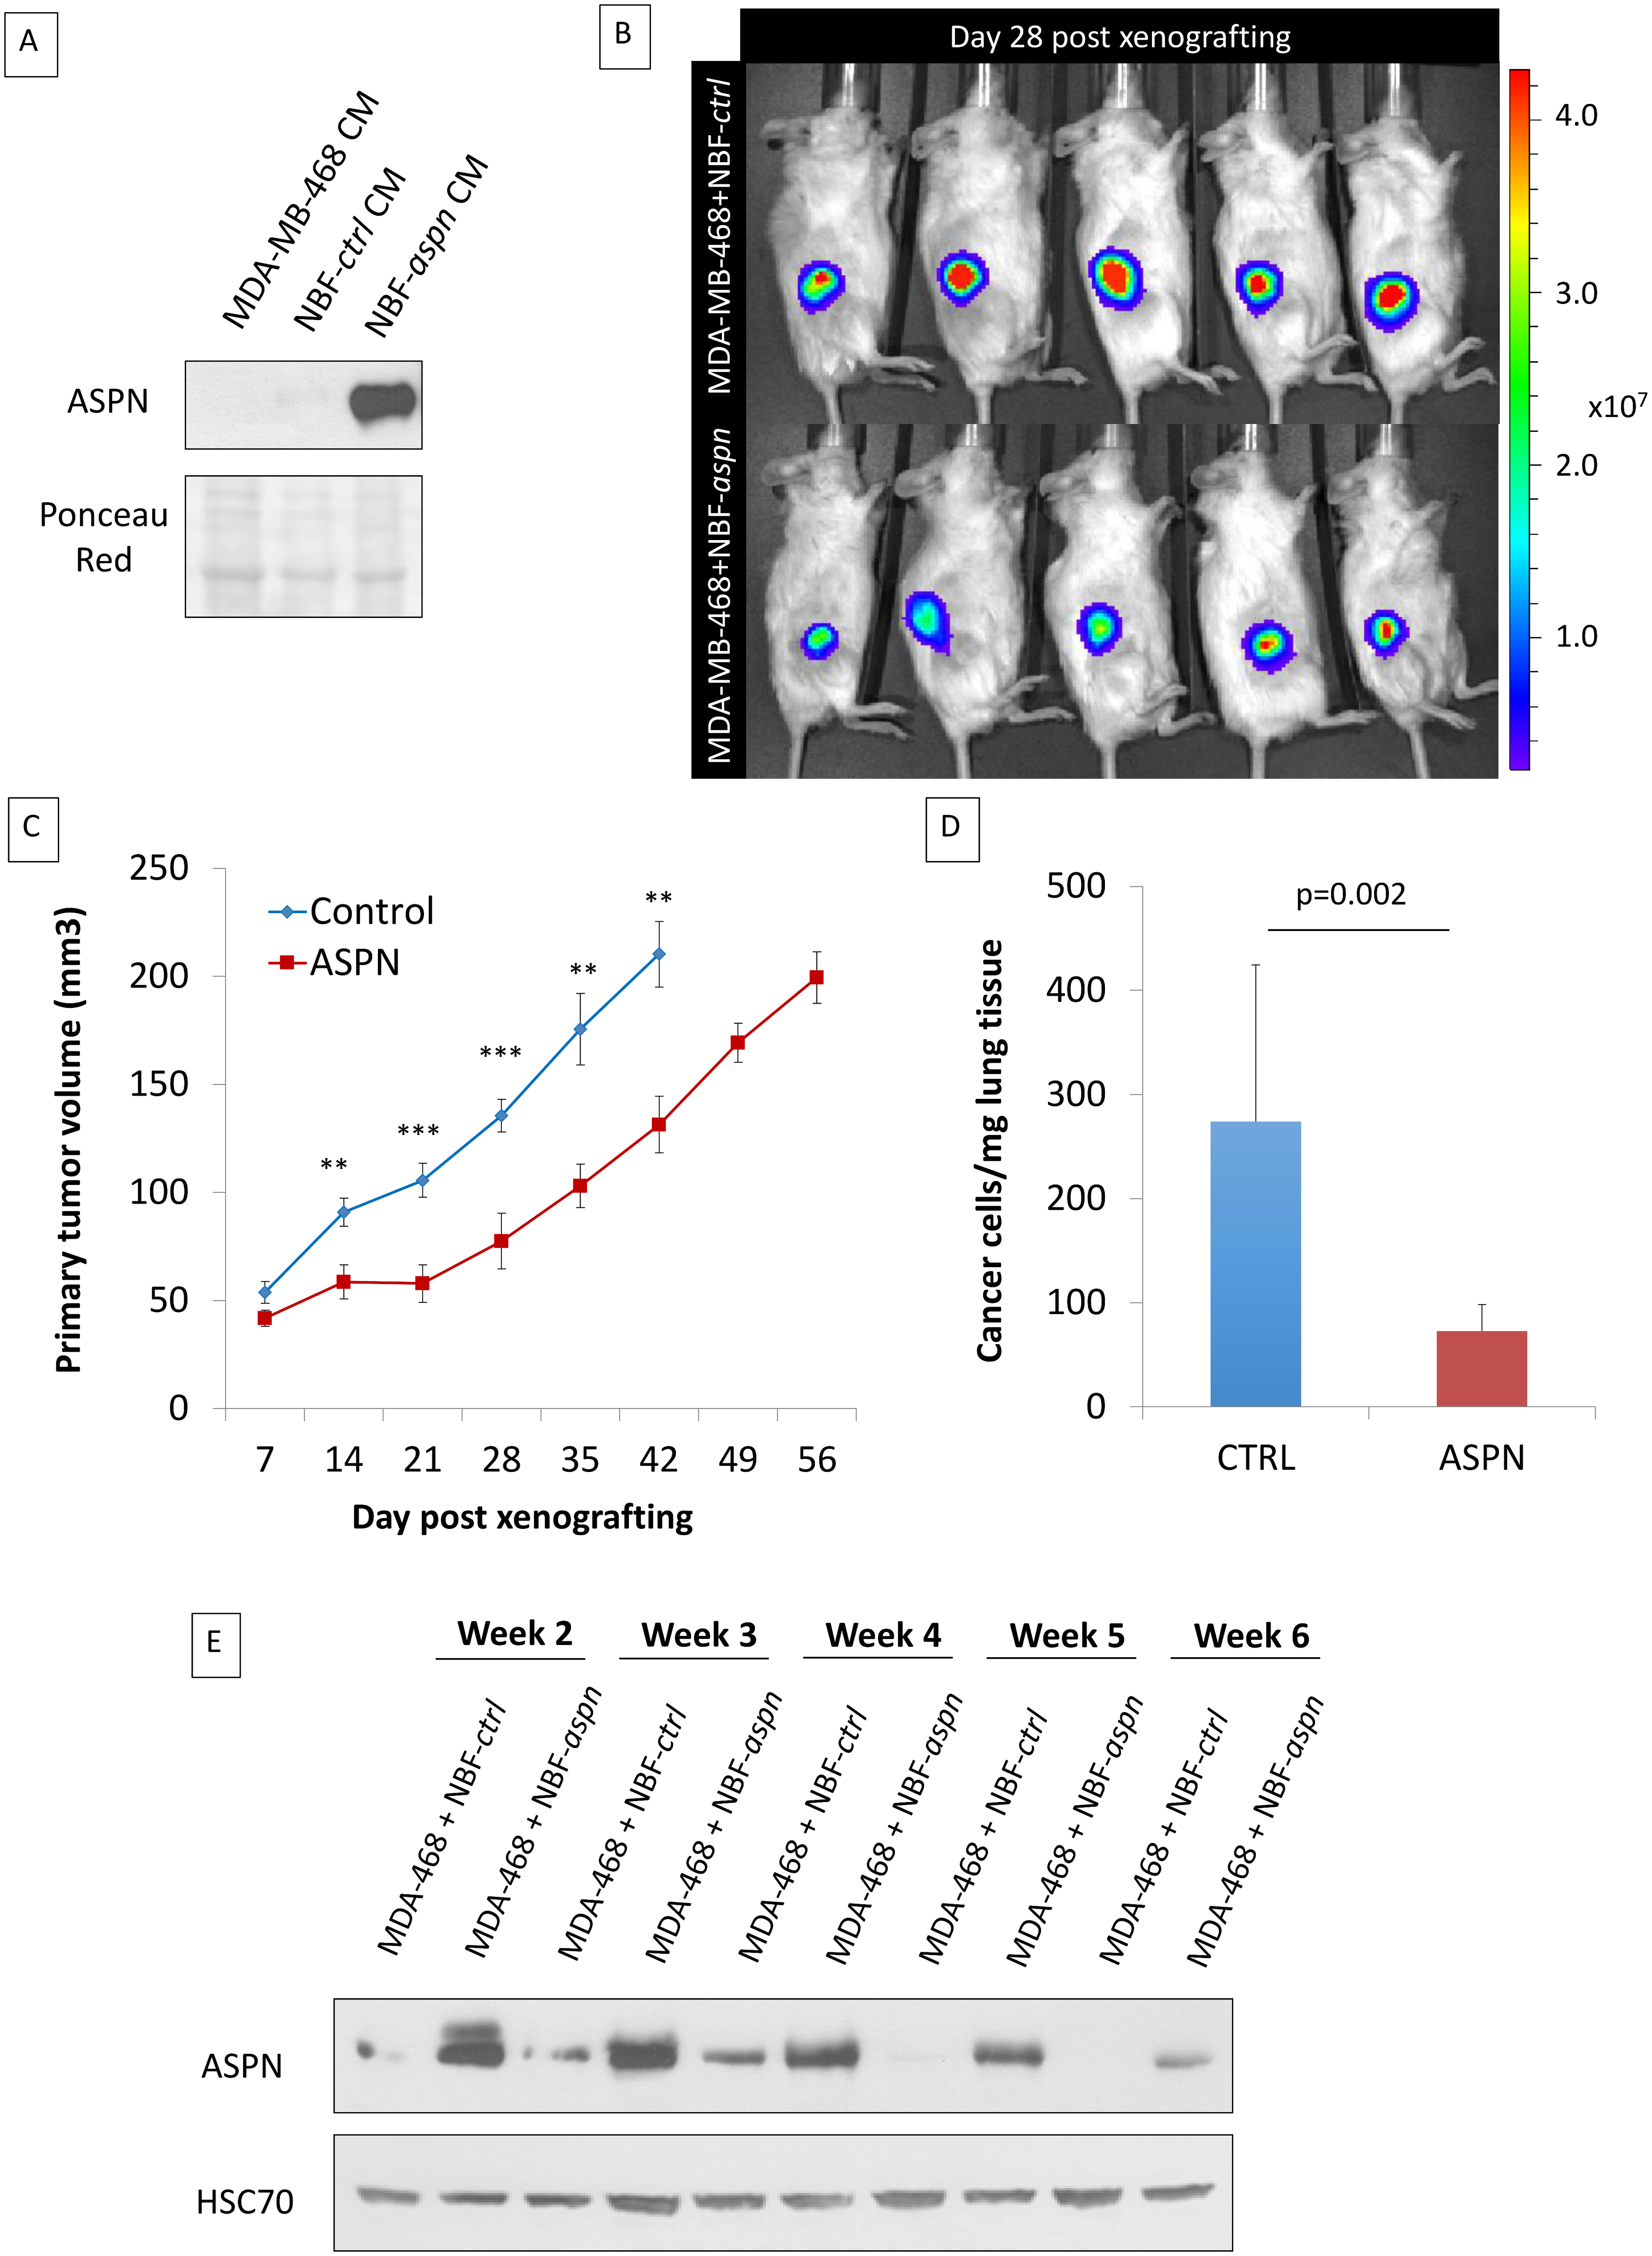 Co-injection of cancer cells and fibroblasts overexpressing asporin reduces primary breast cancer tumor growth and lung metastasis formation in vivo.